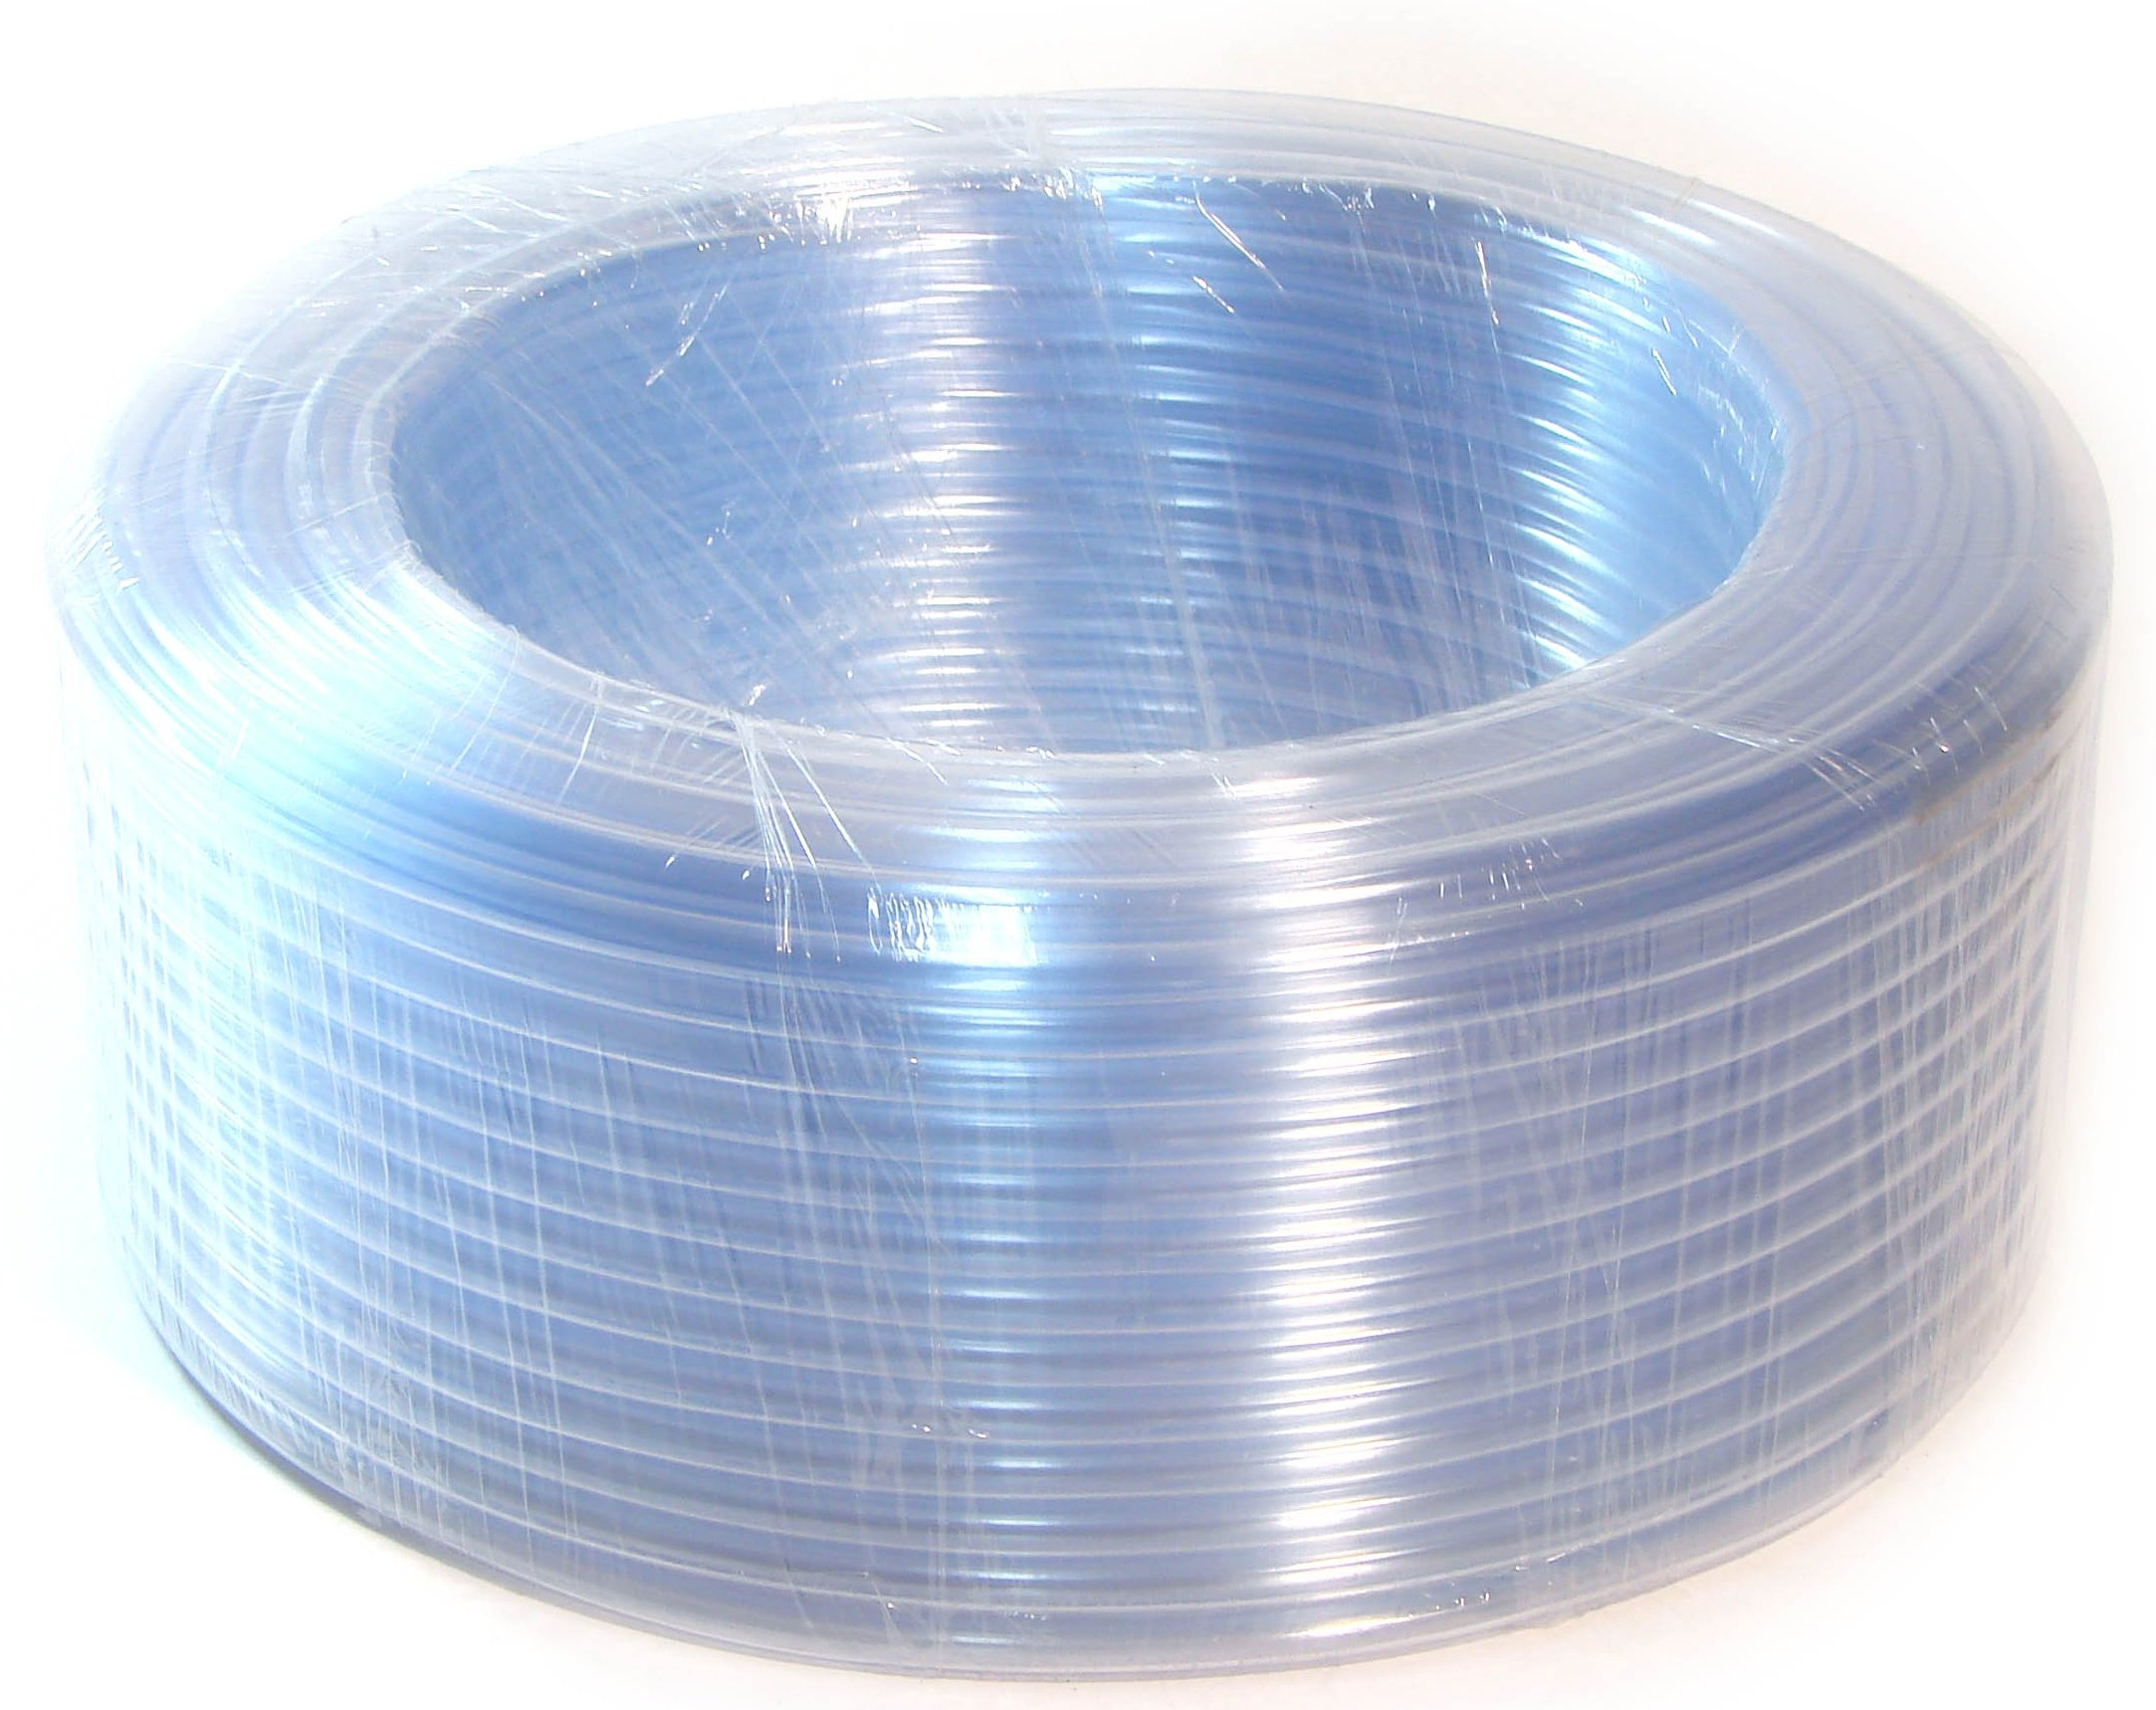 3/8'' ID 300 Ft 90 Meter PVC Clear Vinyl Tubing Flexible Air Vacuum Aquarium Hose Garden Pond